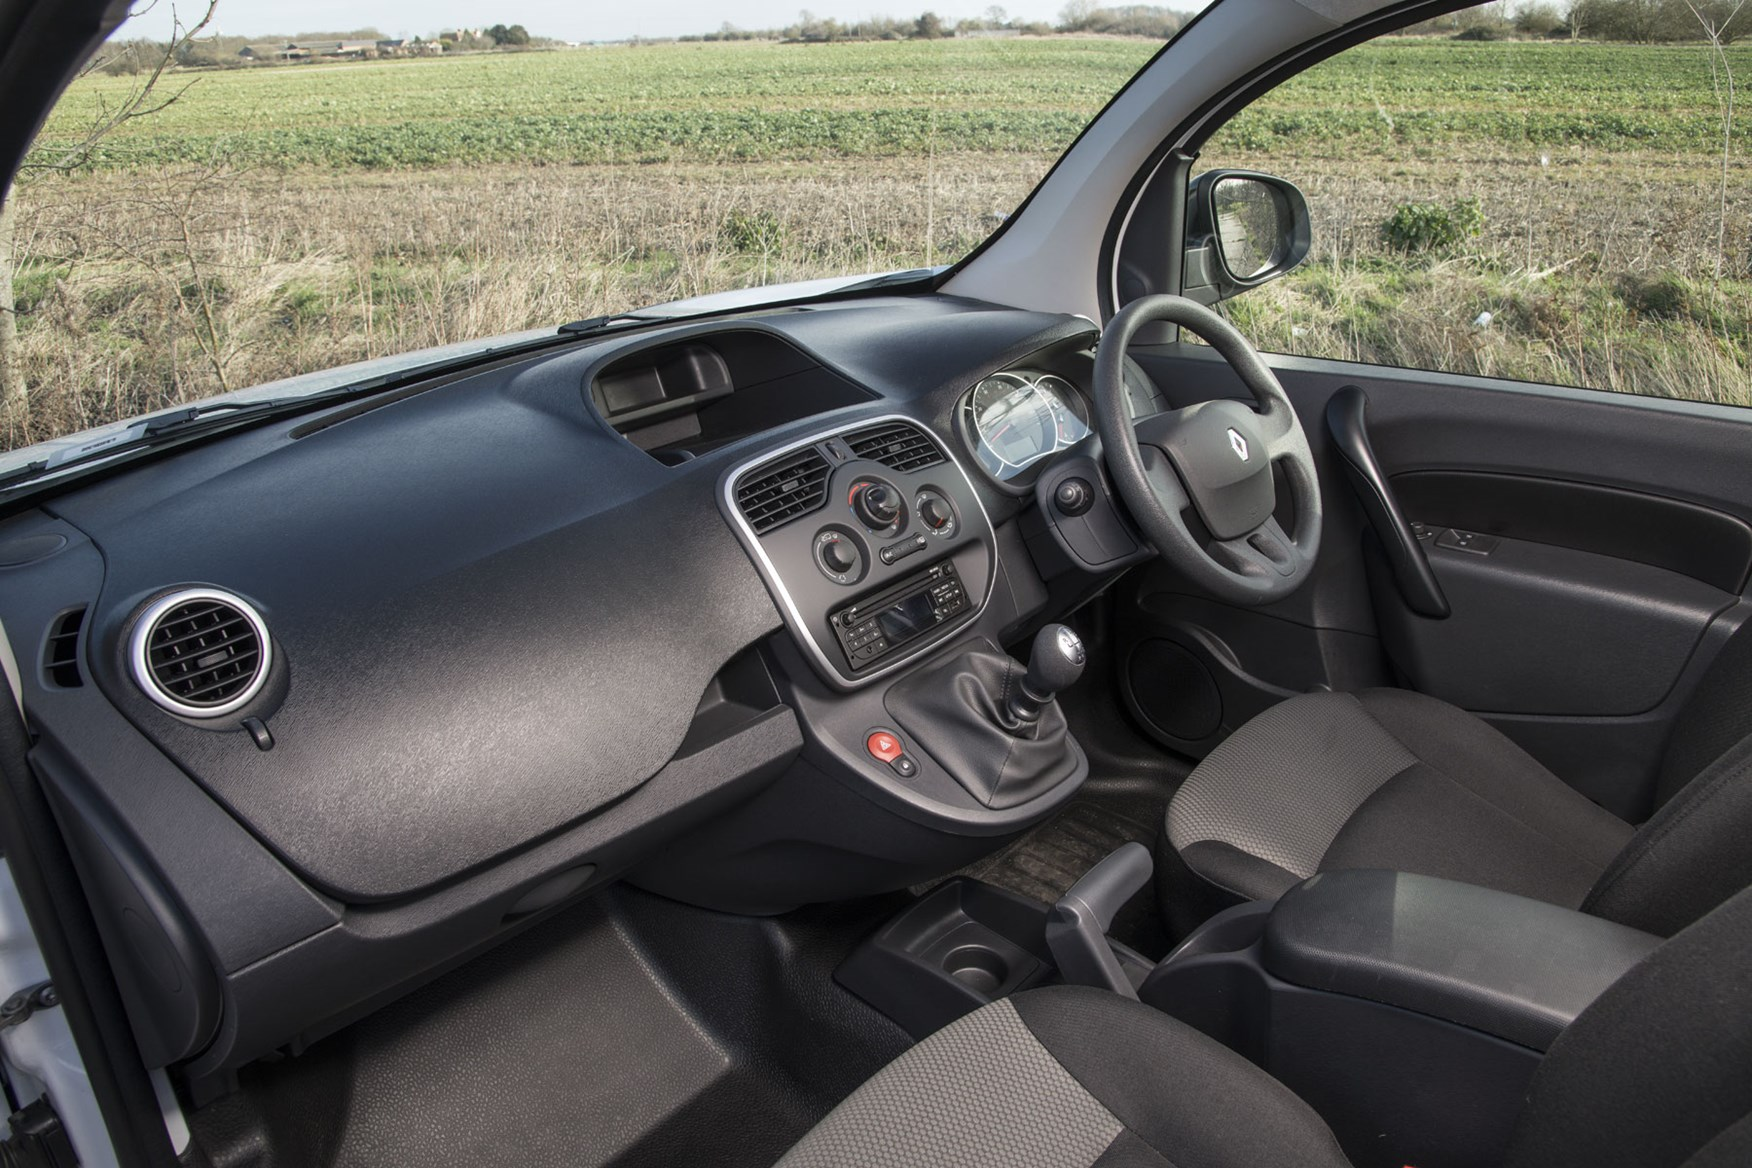 Renault Kangoo van review - cab interior